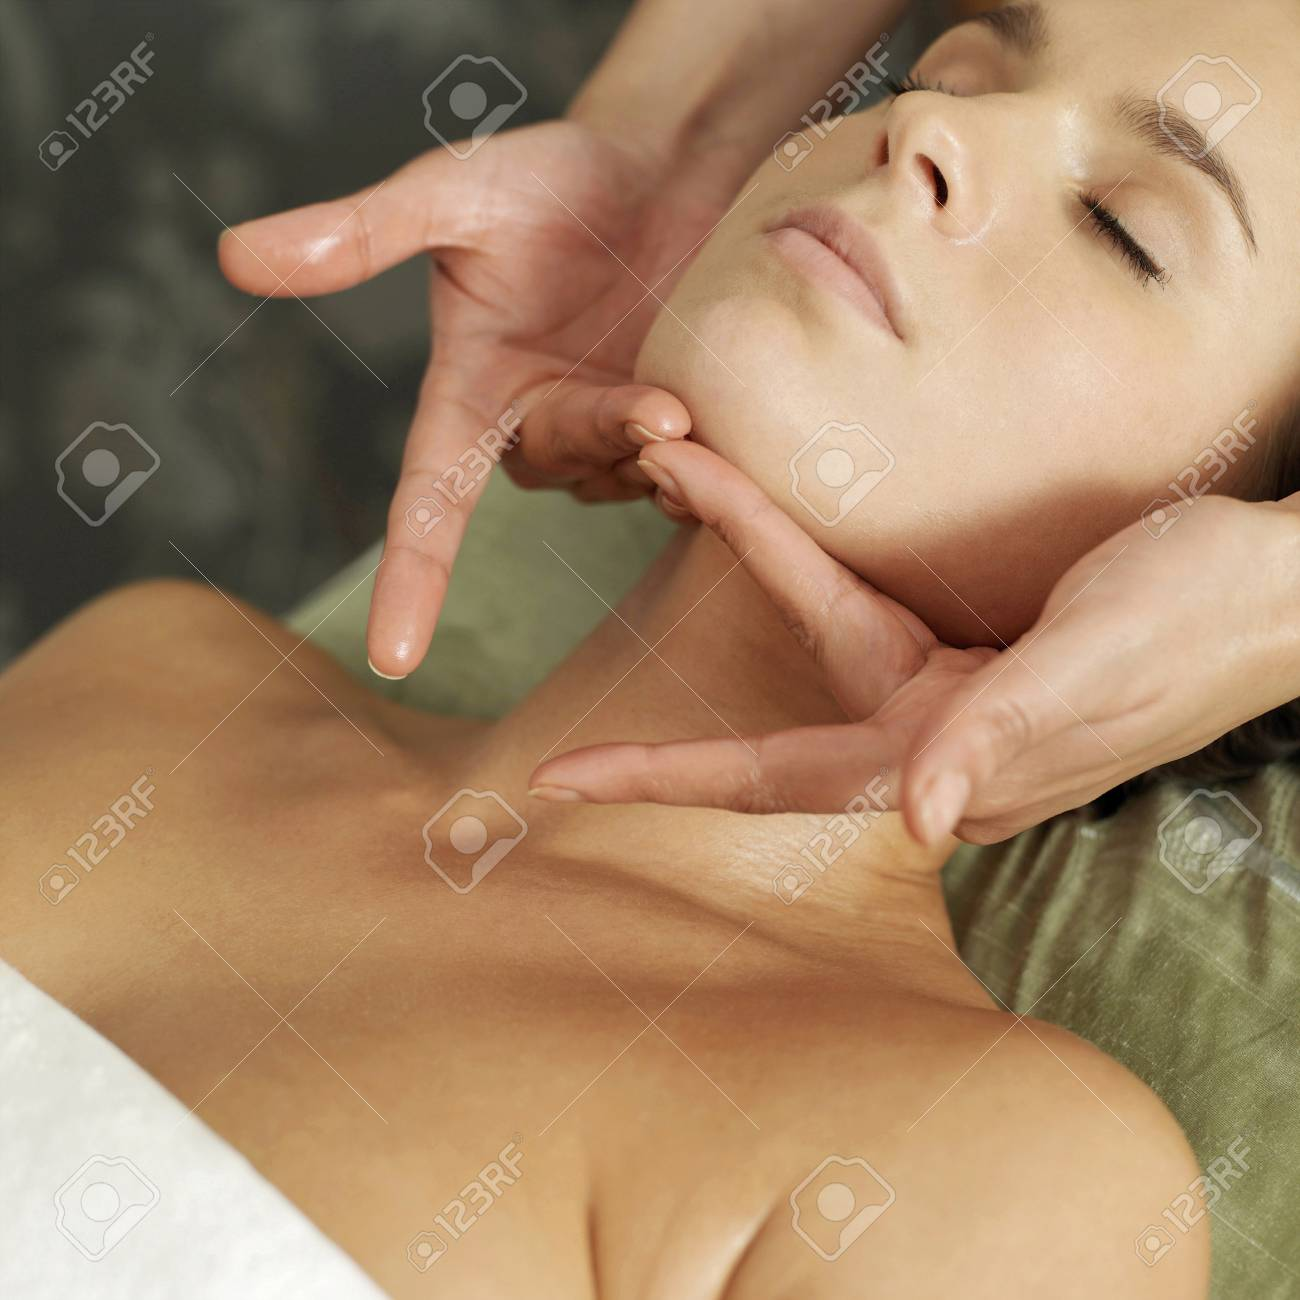 Woman enjoying a relaxing body massage Stock Photo - 26265025